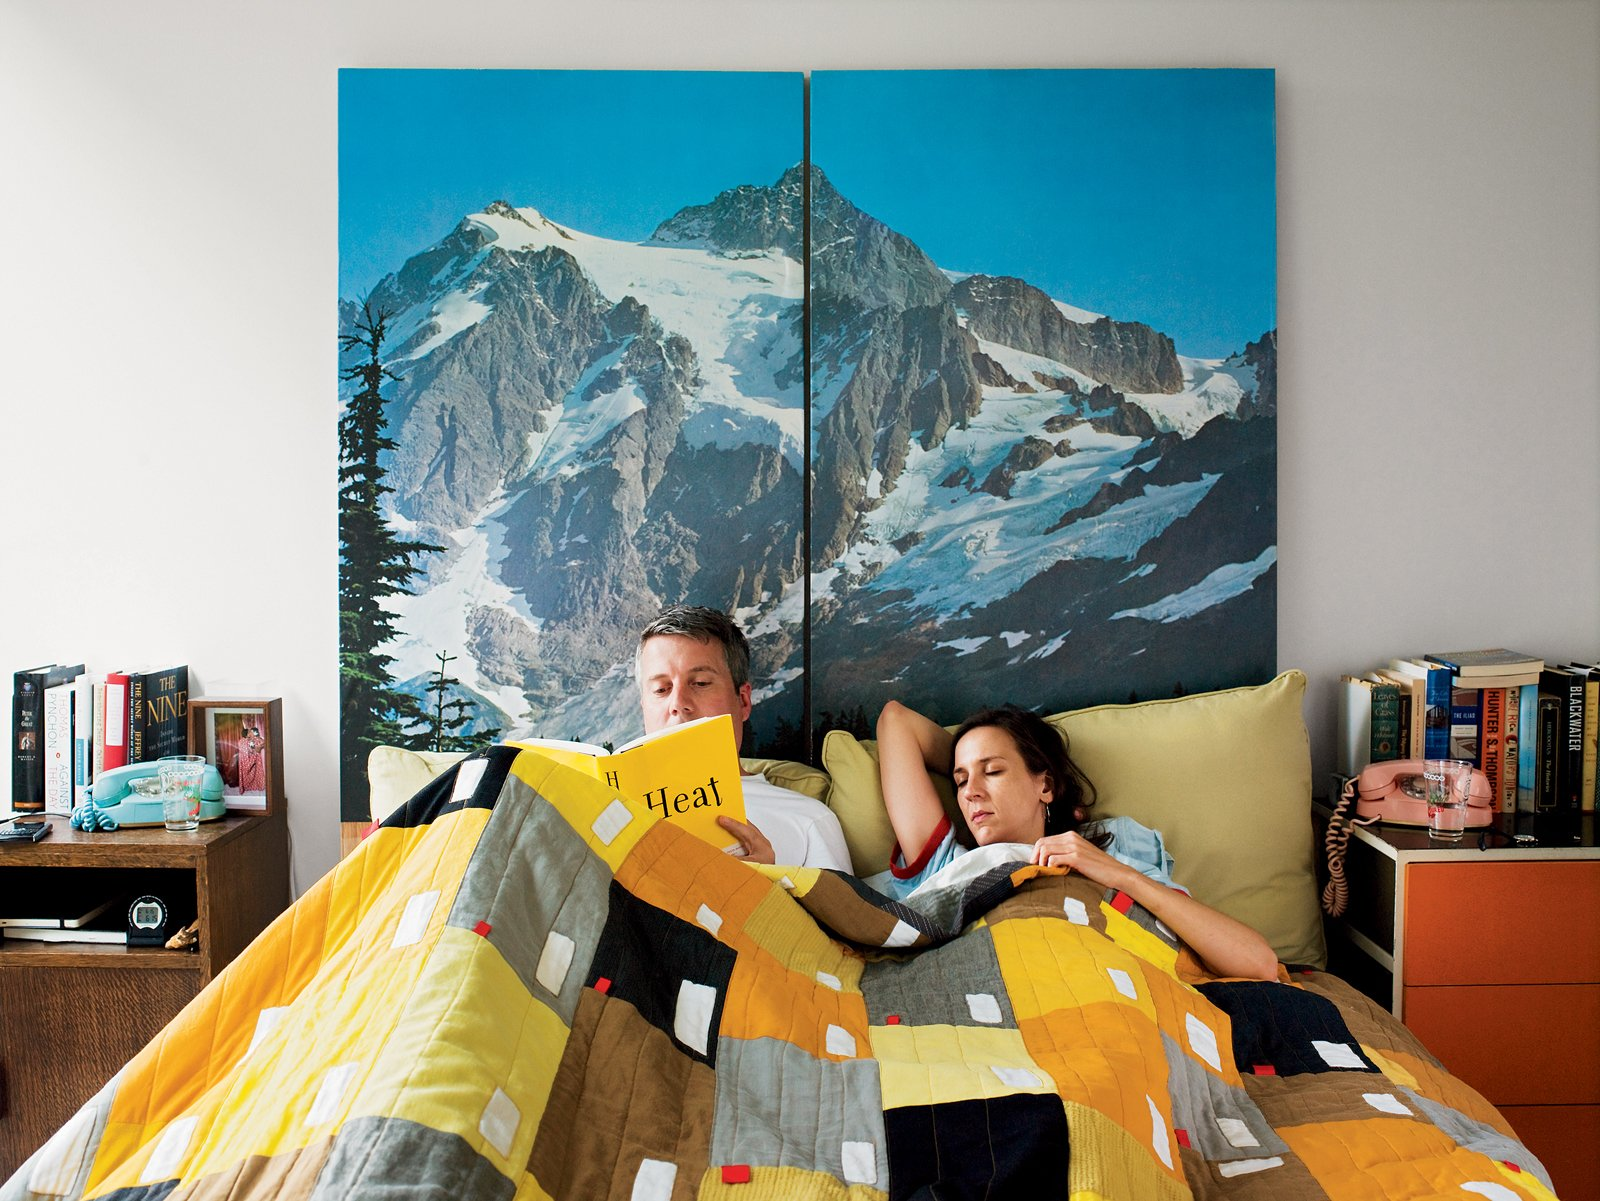 Bedroom, Bed, and Night Stands Toby Barlow and Keira Alexandra enjoy a leisurely Alpine morning in bed in their Detroit high-rise home.  Beautiful Bedrooms by Sara Ost